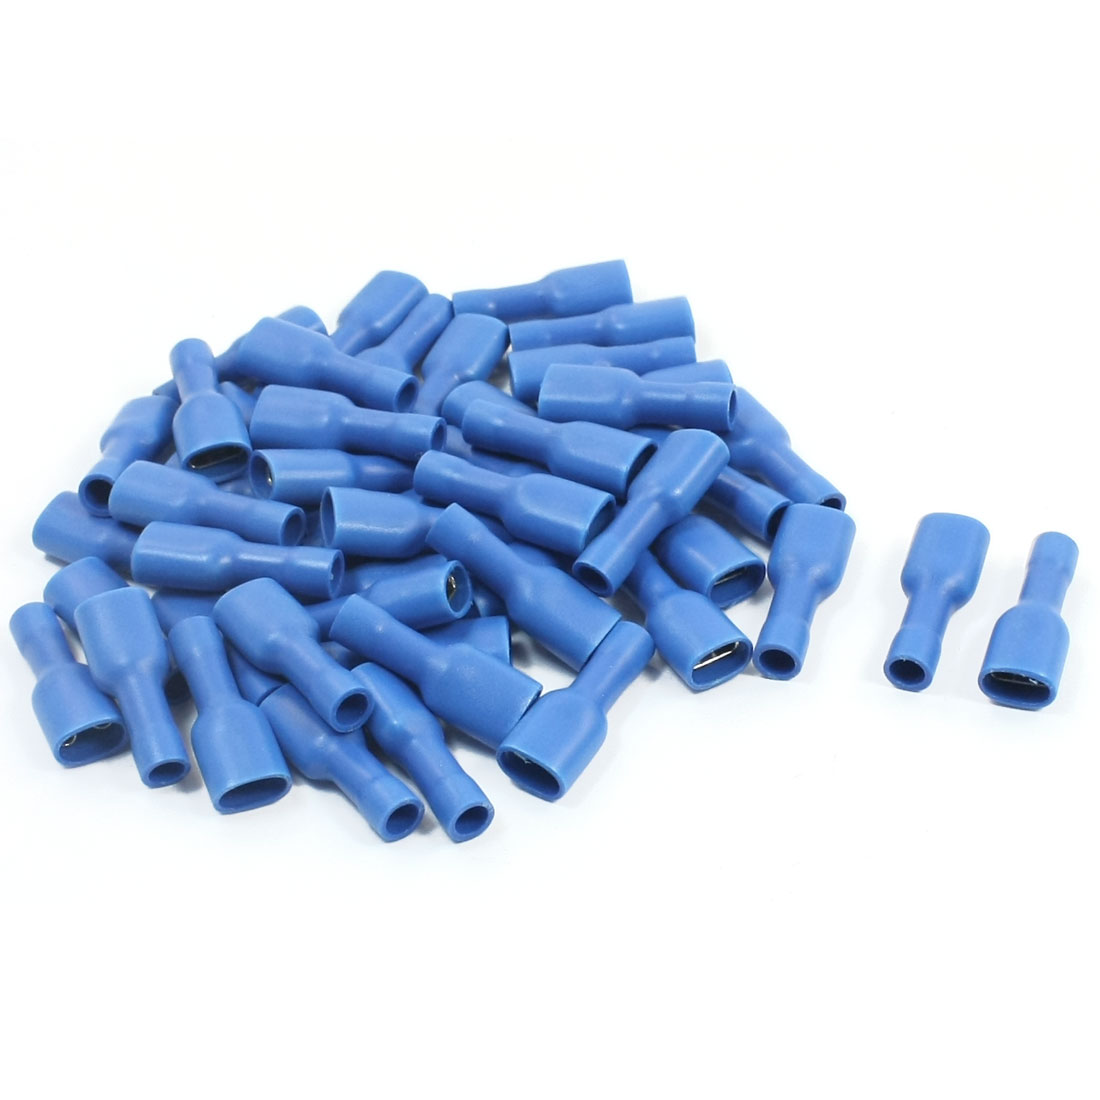 50pcs FDFD2-250 16-14AWG Wire Blue Female Spade Crimp Insulated Terminal